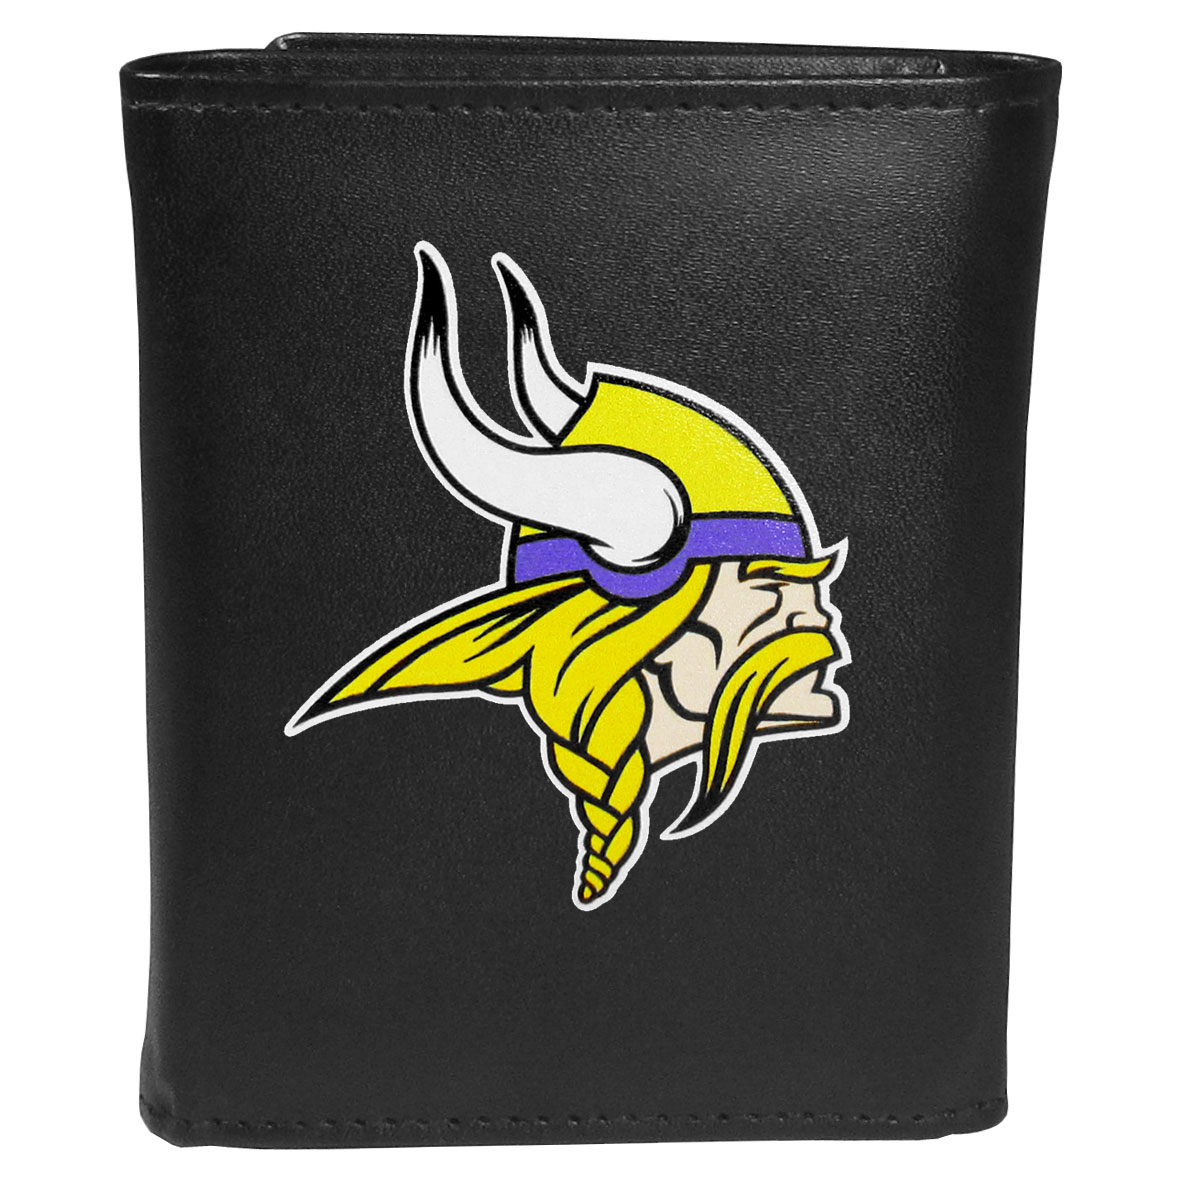 Minnesota Vikings Leather Tri-fold Wallet, Large Logo - Our classic fine leather tri-fold wallet is meticulously crafted with genuine leather that will age beautifully so you will have a quality wallet for years to come. This is fan apparel at its finest. The wallet is packed with organizational  features; lots of credit card slots, large billfold pocket, and a window ID slot. The front of the wallet features an extra large Minnesota Vikings printed logo.